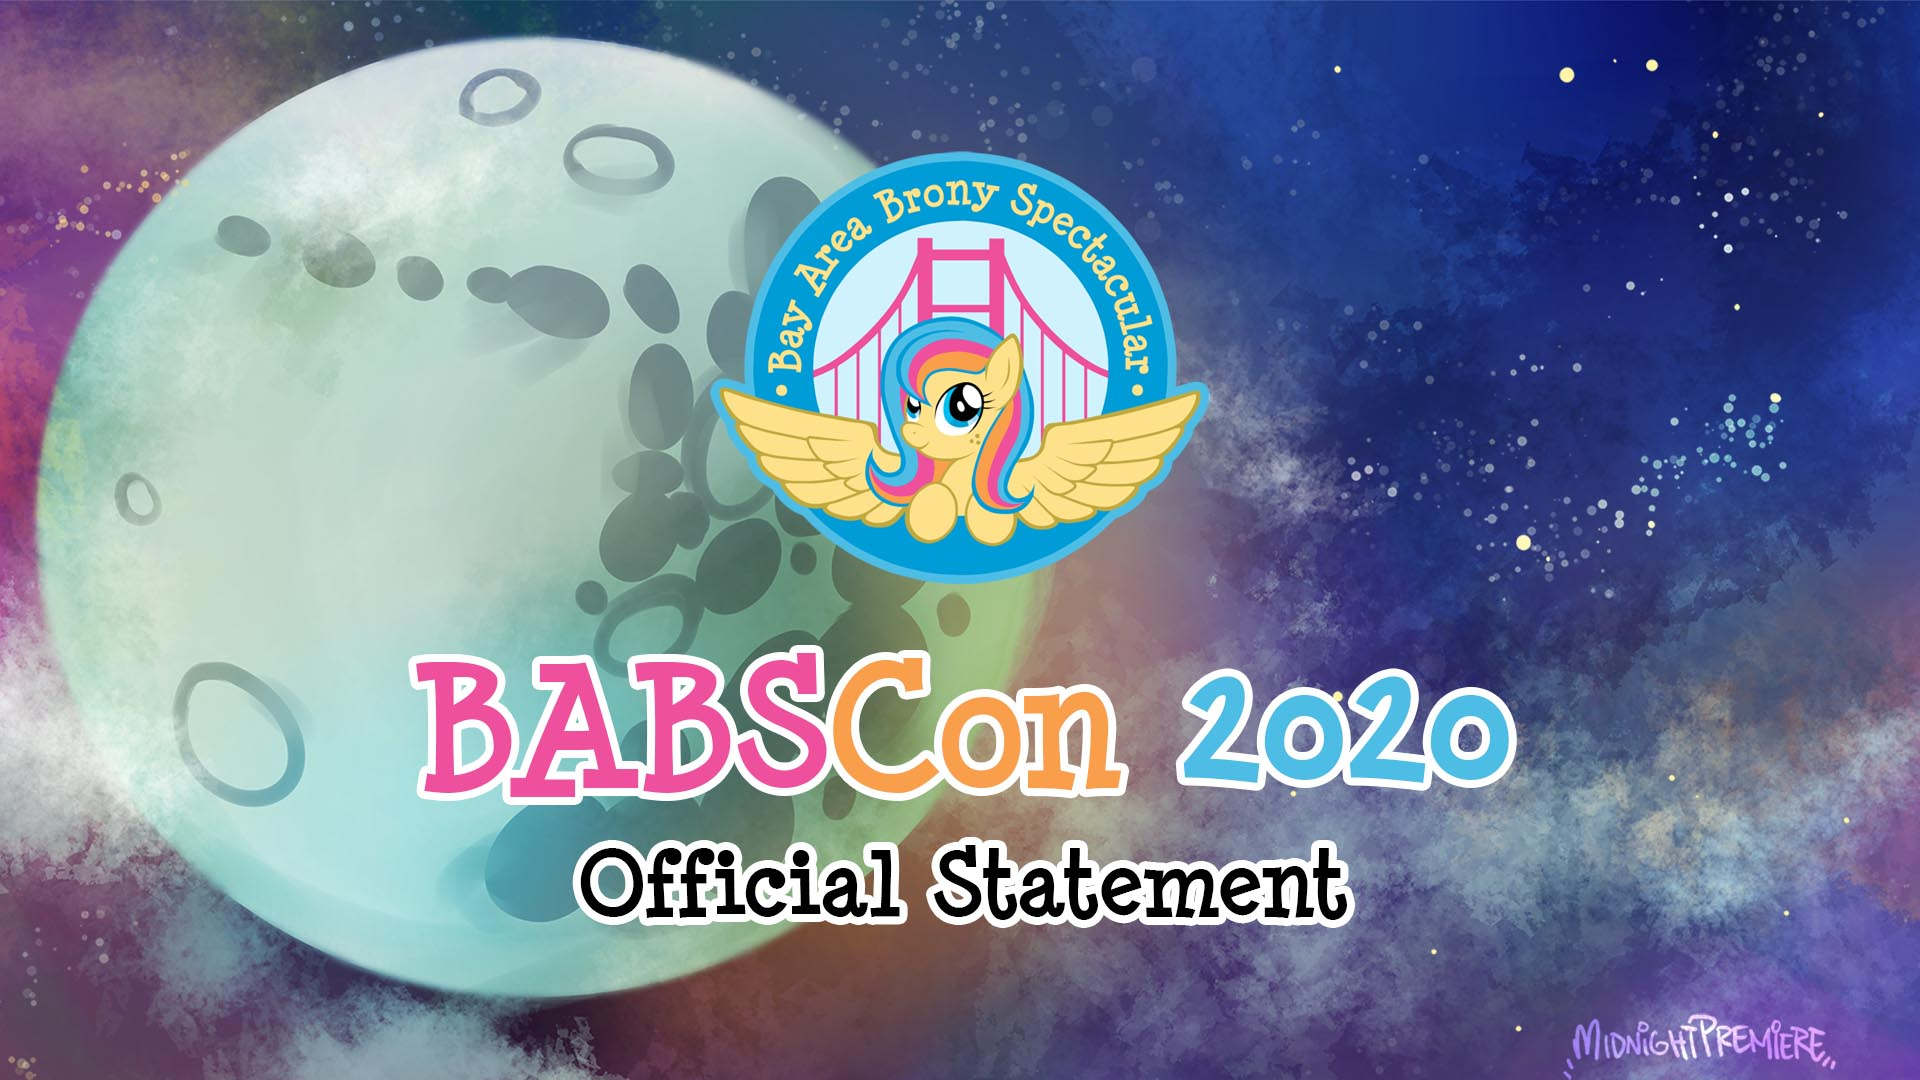 BABSCon 2020 is Canceled Due to COVID-19. Let's Get Started on BABSCon 2021!